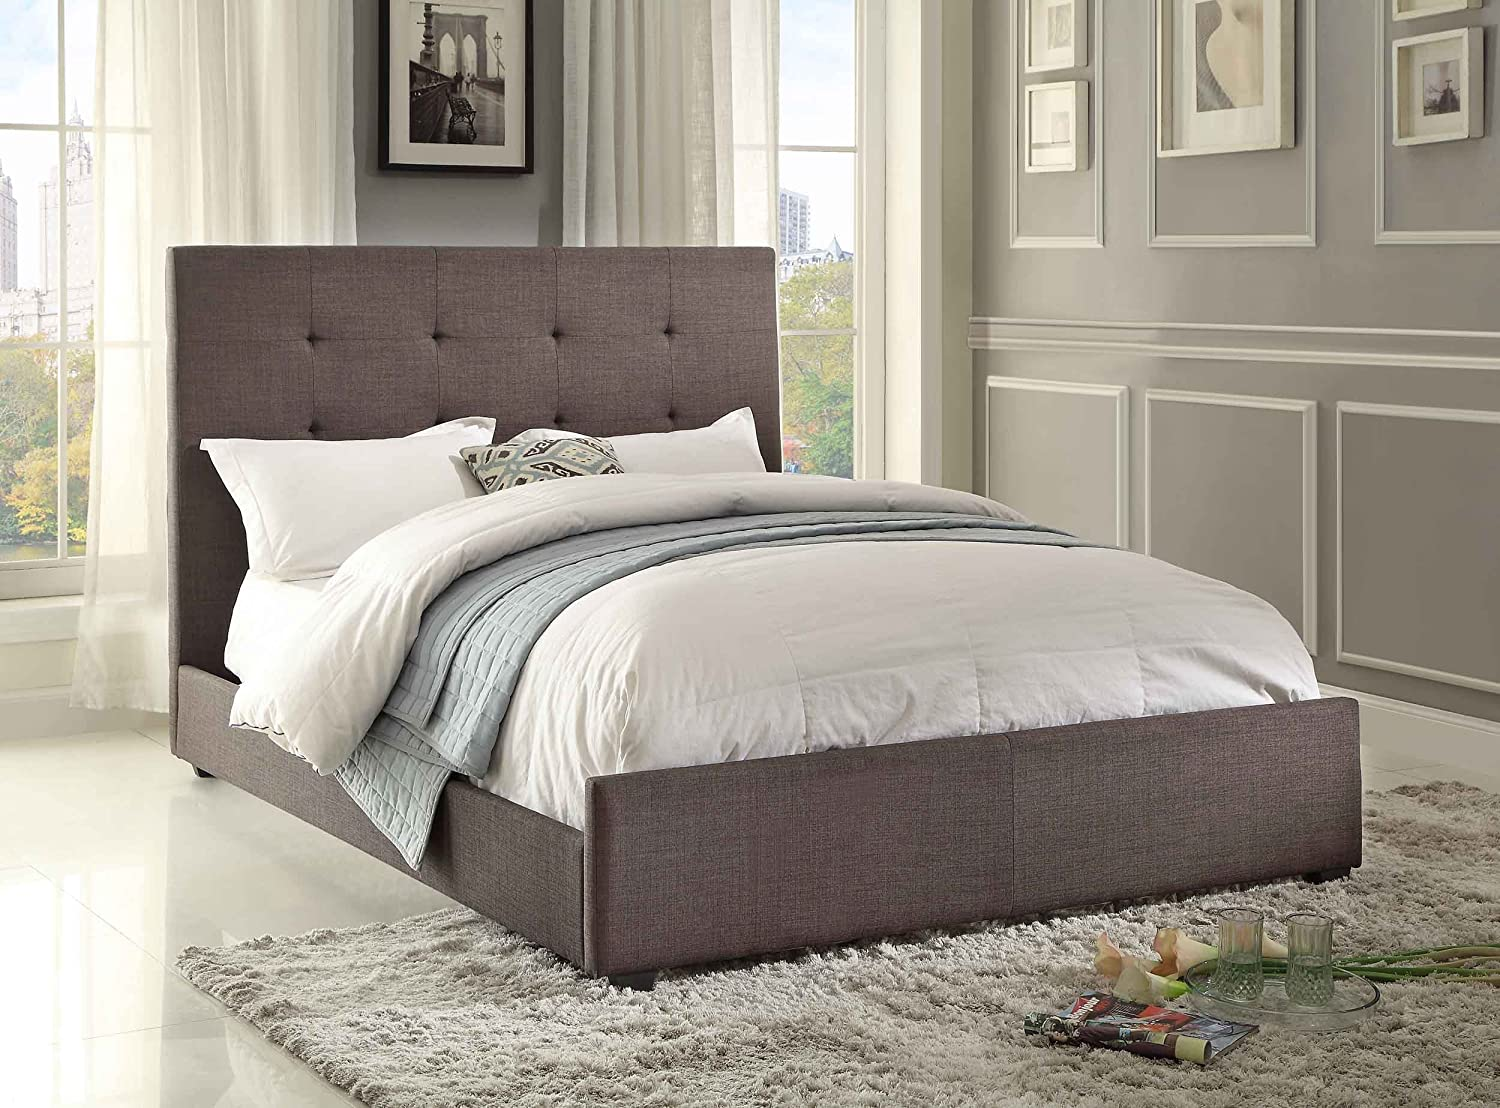 Amazon.com: Homelegance 1890N 1 Queen Size Upholstered Bed, Grey Fabric:  Kitchen U0026 Dining